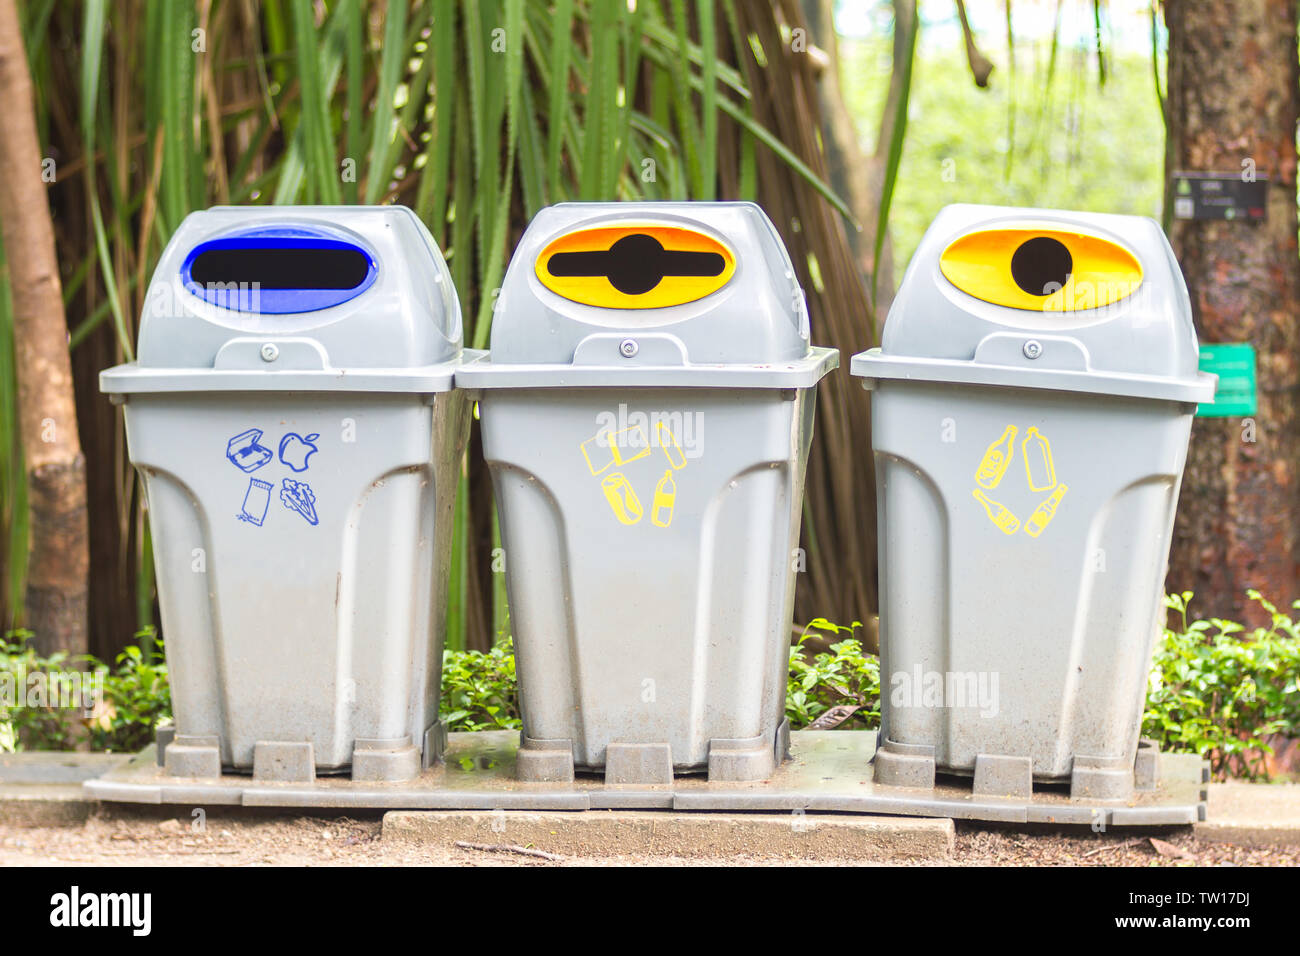 Recycle bins with recycle symbol in park Stock Photo